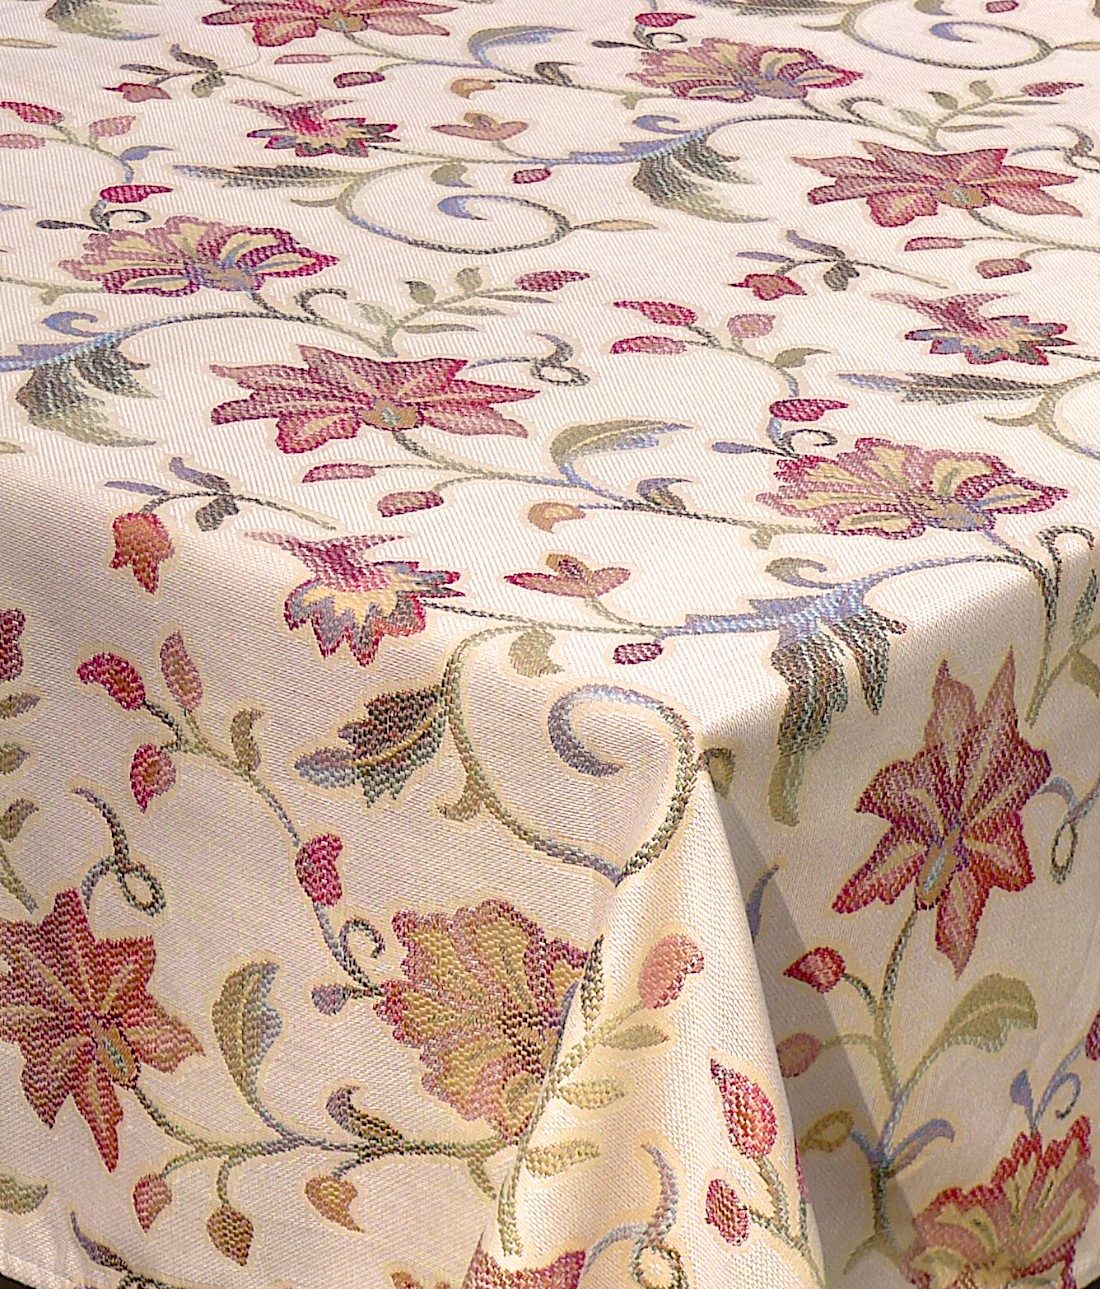 Image of Jacquard Flax / Linen Tablecloth